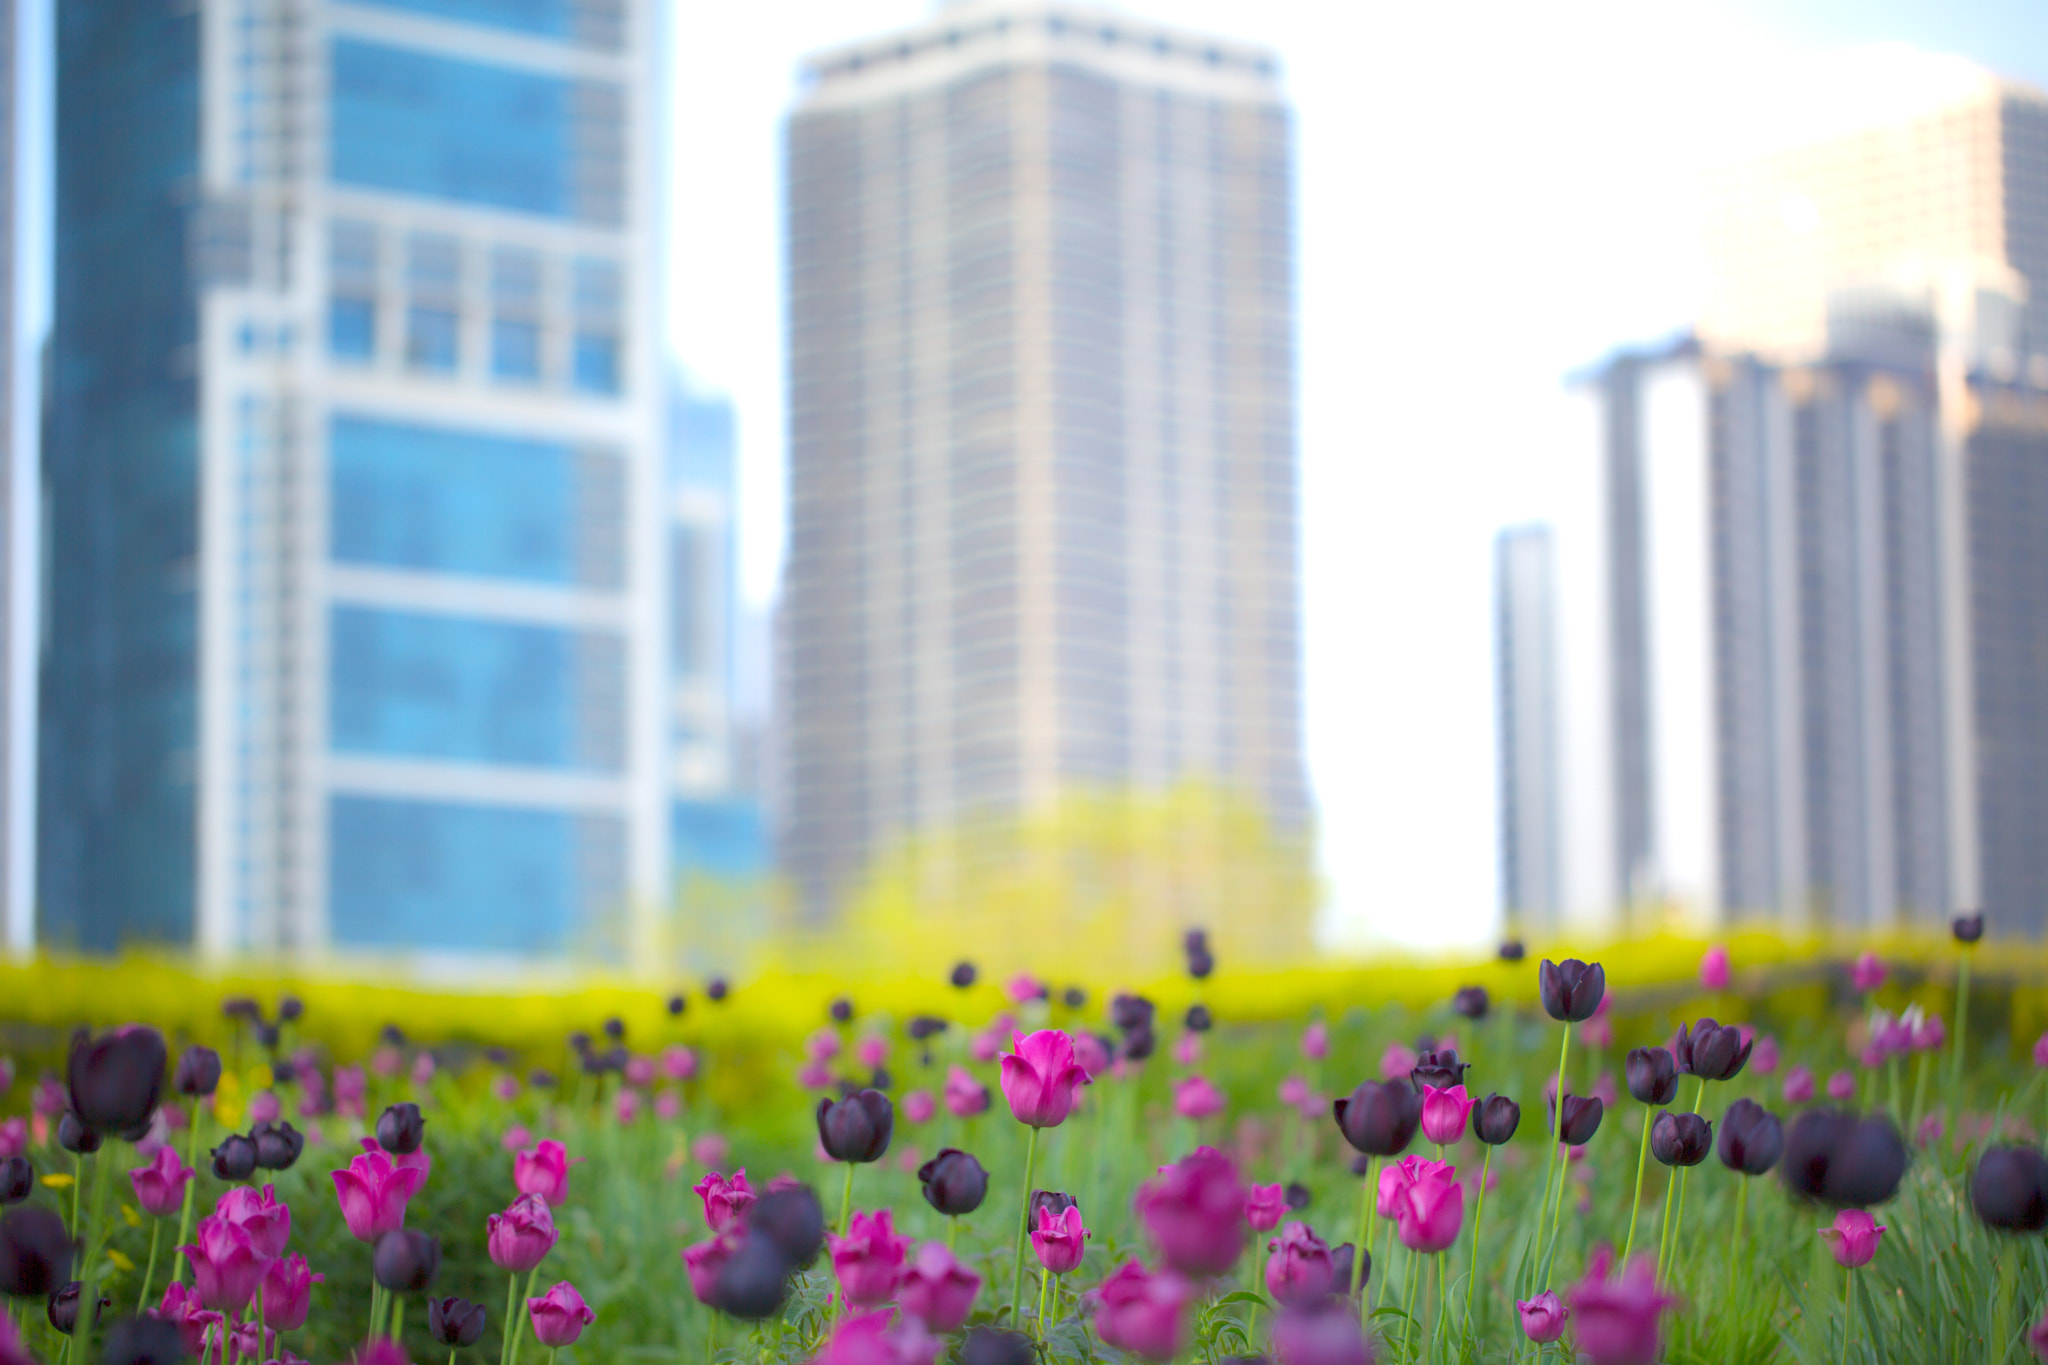 Photograph Urban Flora by Honda Rider on 500px